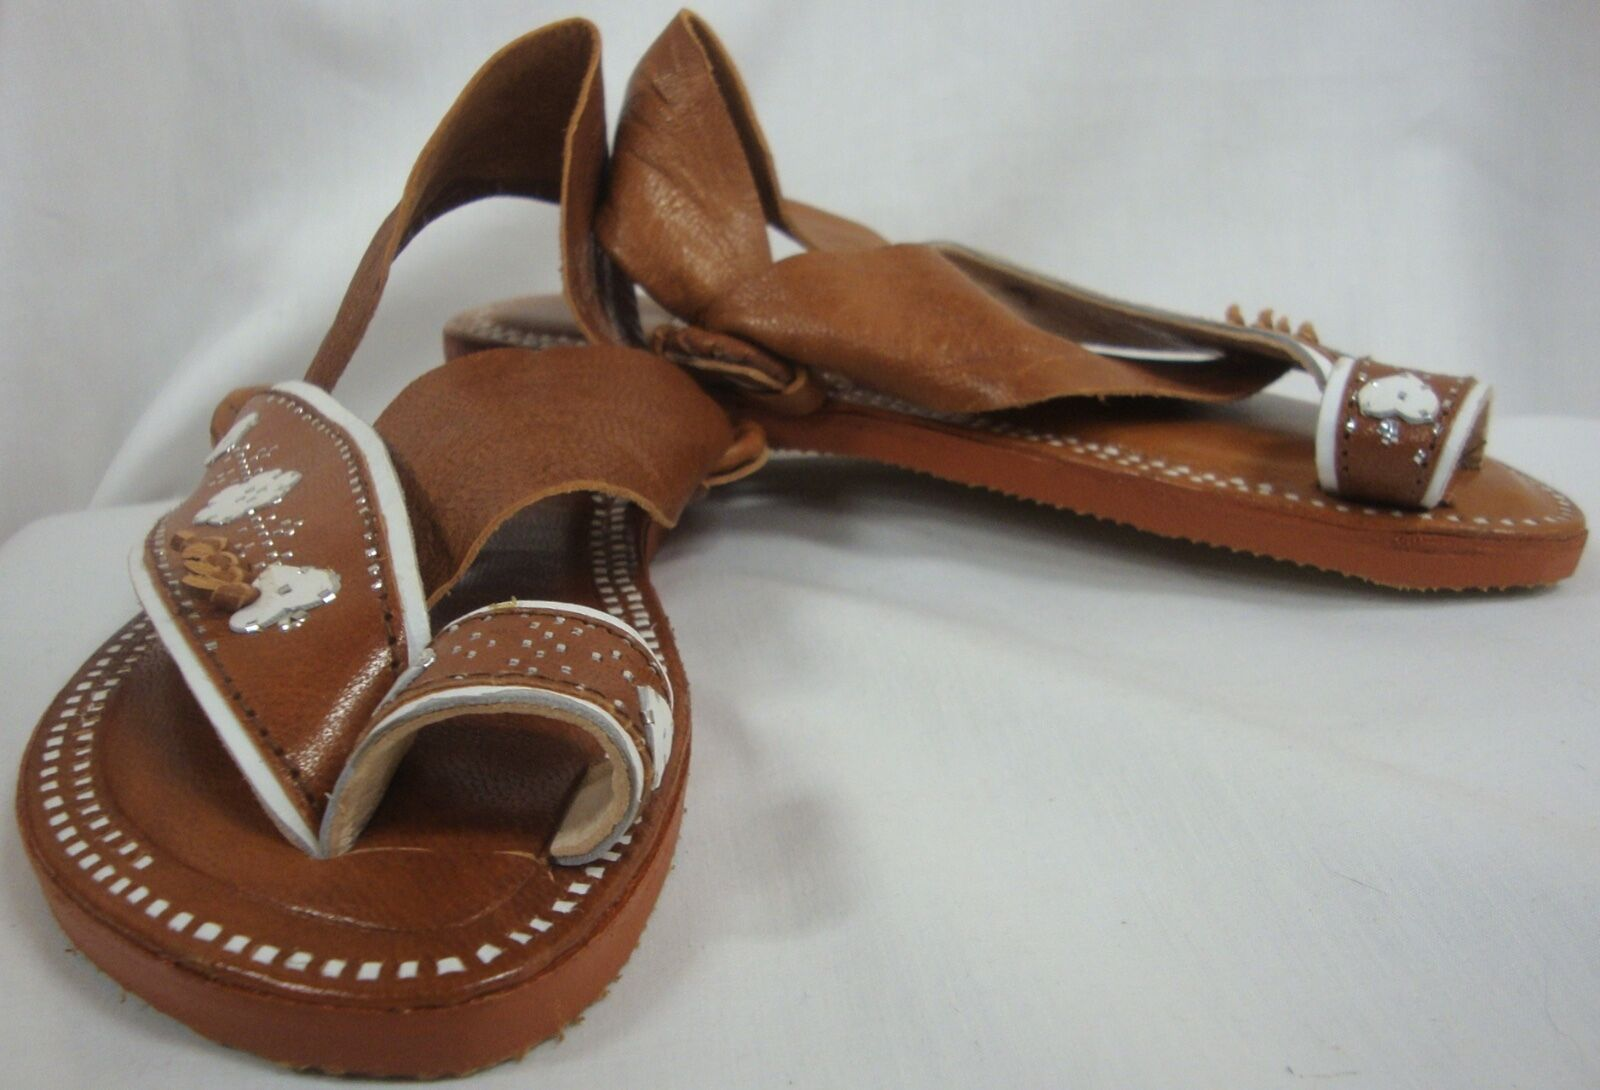 SHAMAK SANDALS UNIQUE BOUTIQUE STYLE BROWN LEATHER WITH WEISS TRIM SIZE 6 EUC